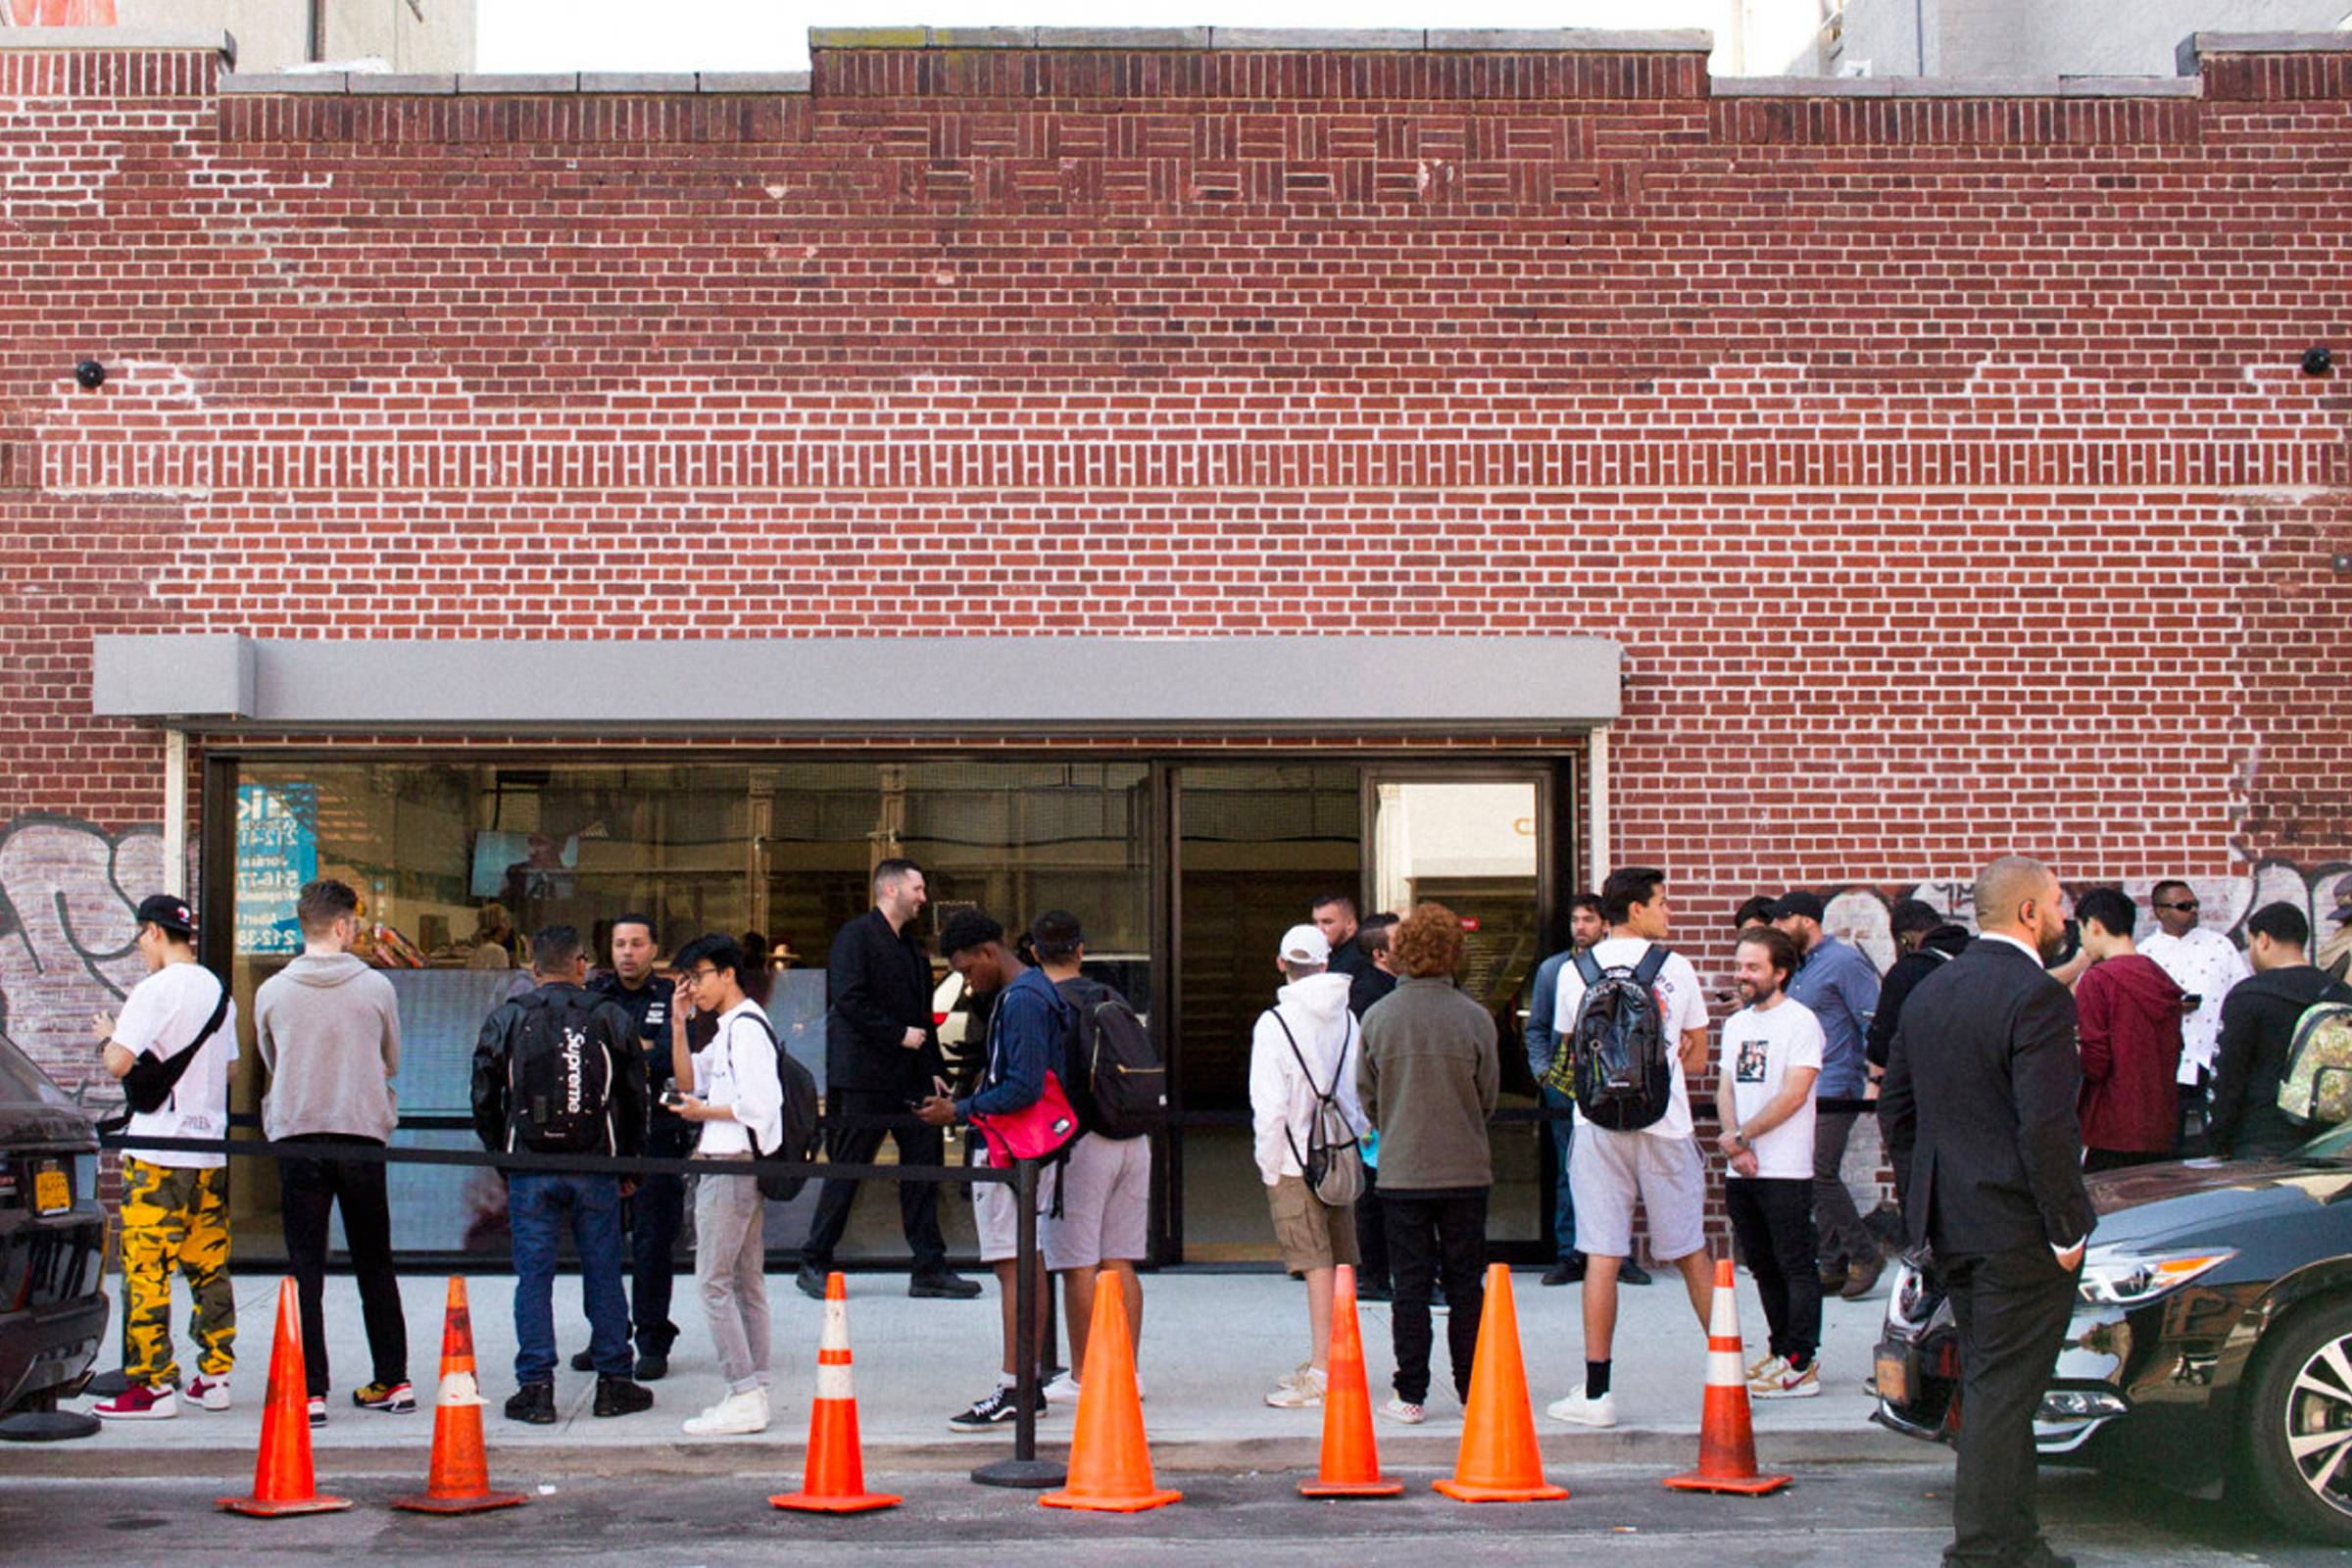 Line outside of Supreme's Brooklyn location, taken during the store's grand opening